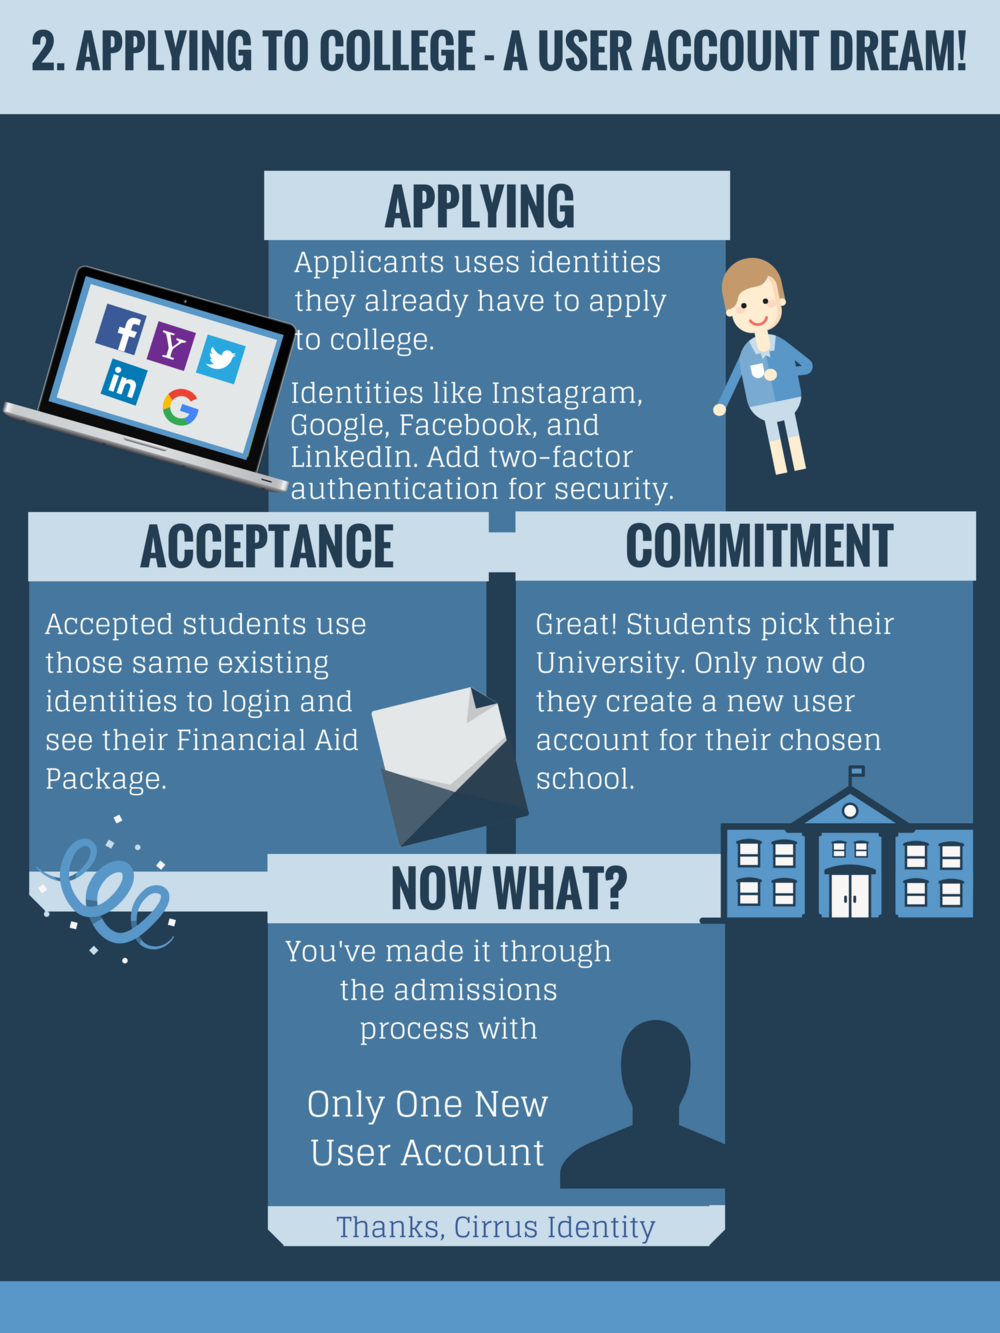 2 - Applying to College - A User Account Dream